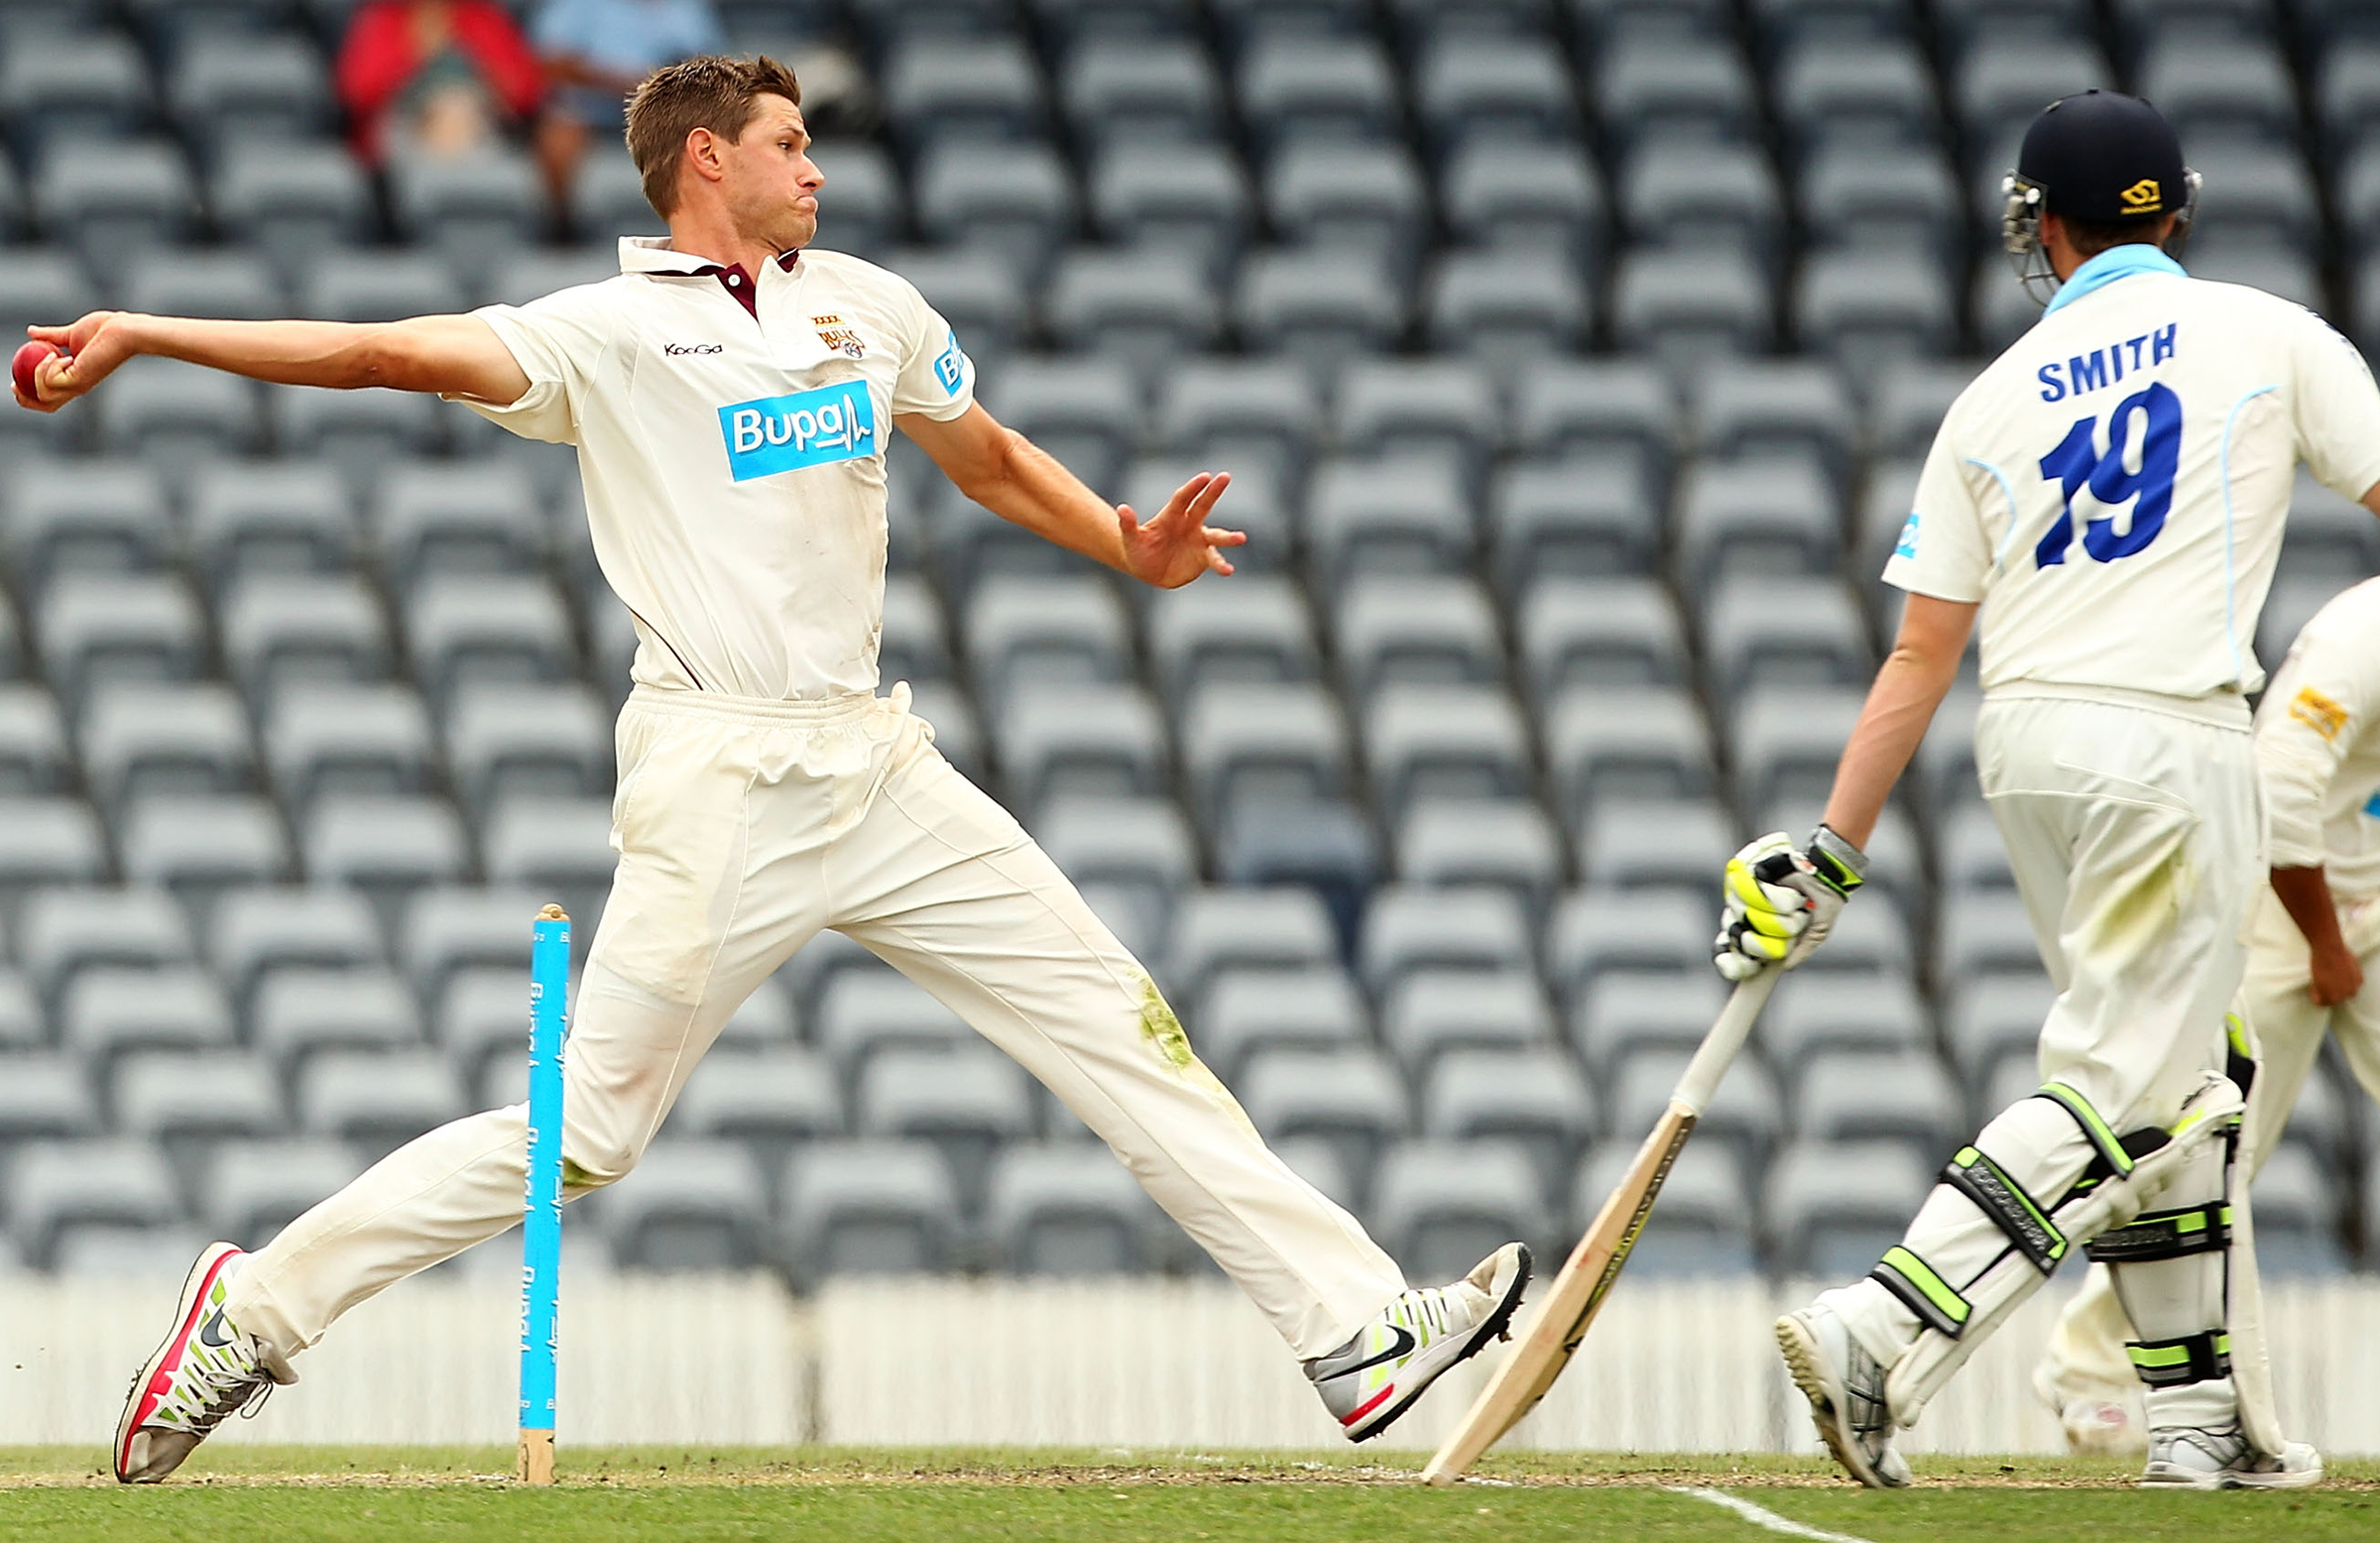 After taking 31 wickets at 23.51 in '12-13, Gannon was cited for throwing // Getty